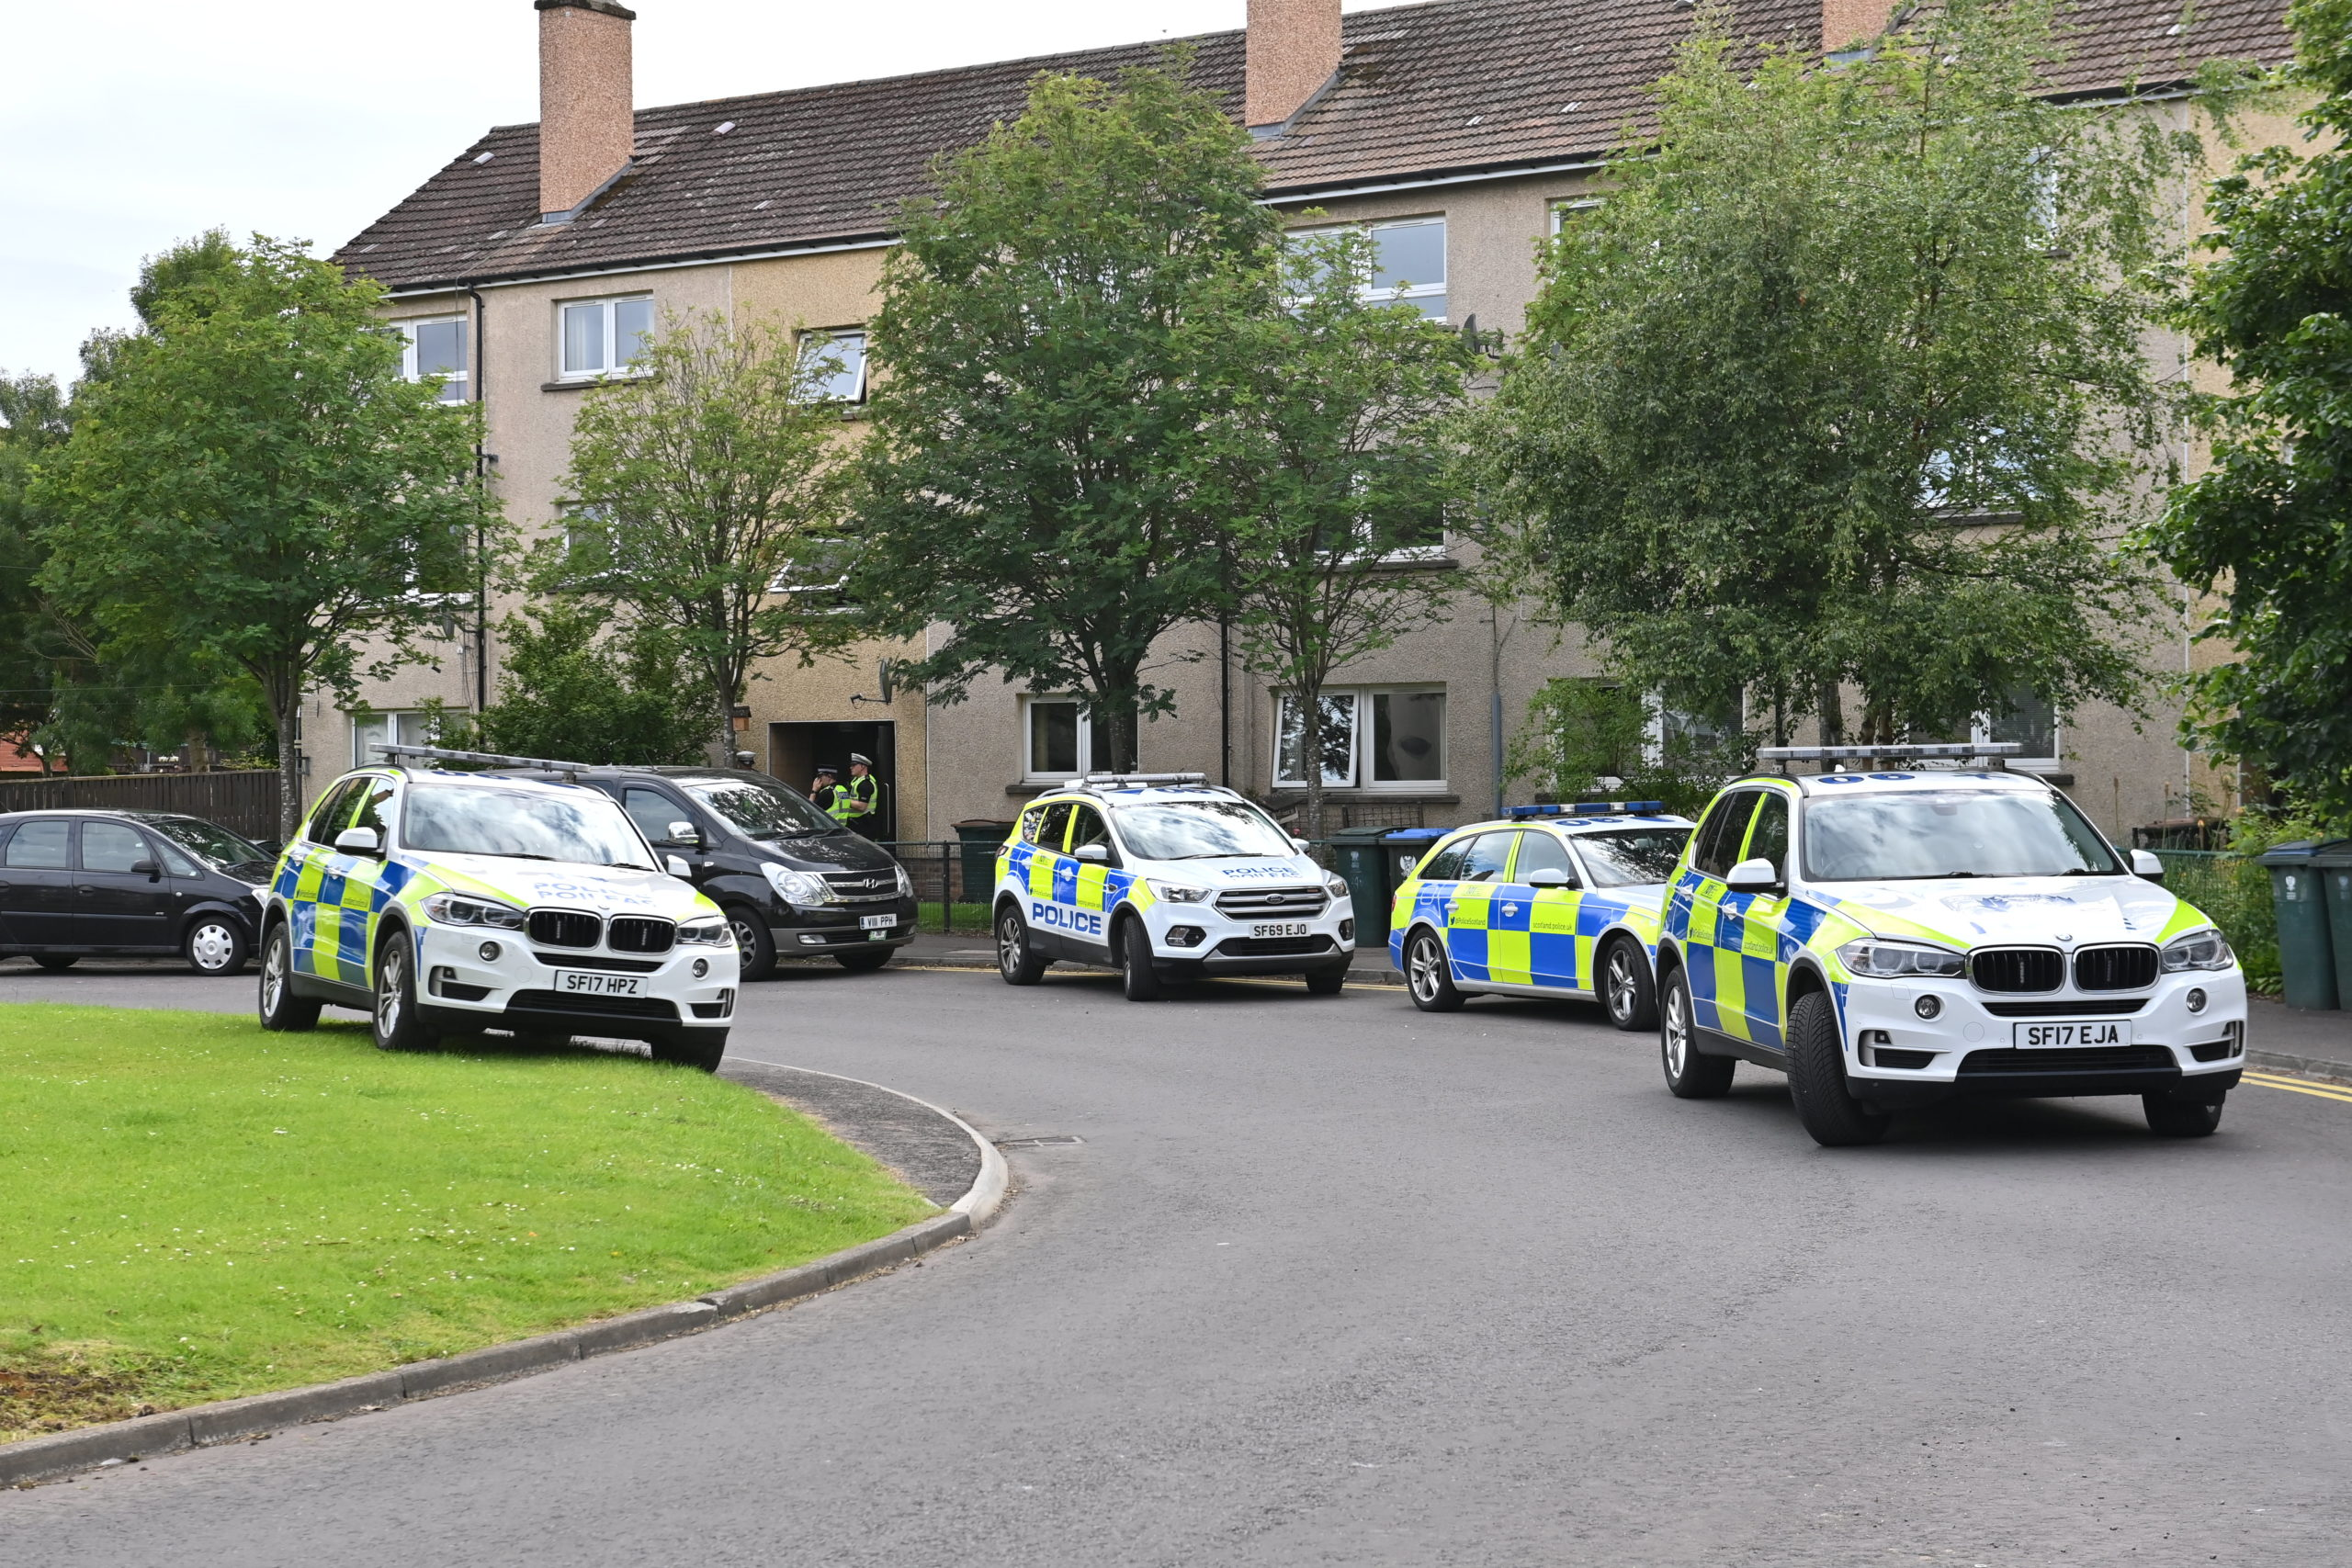 Police attend at Newhouse Road, Perth, on Saturday night.